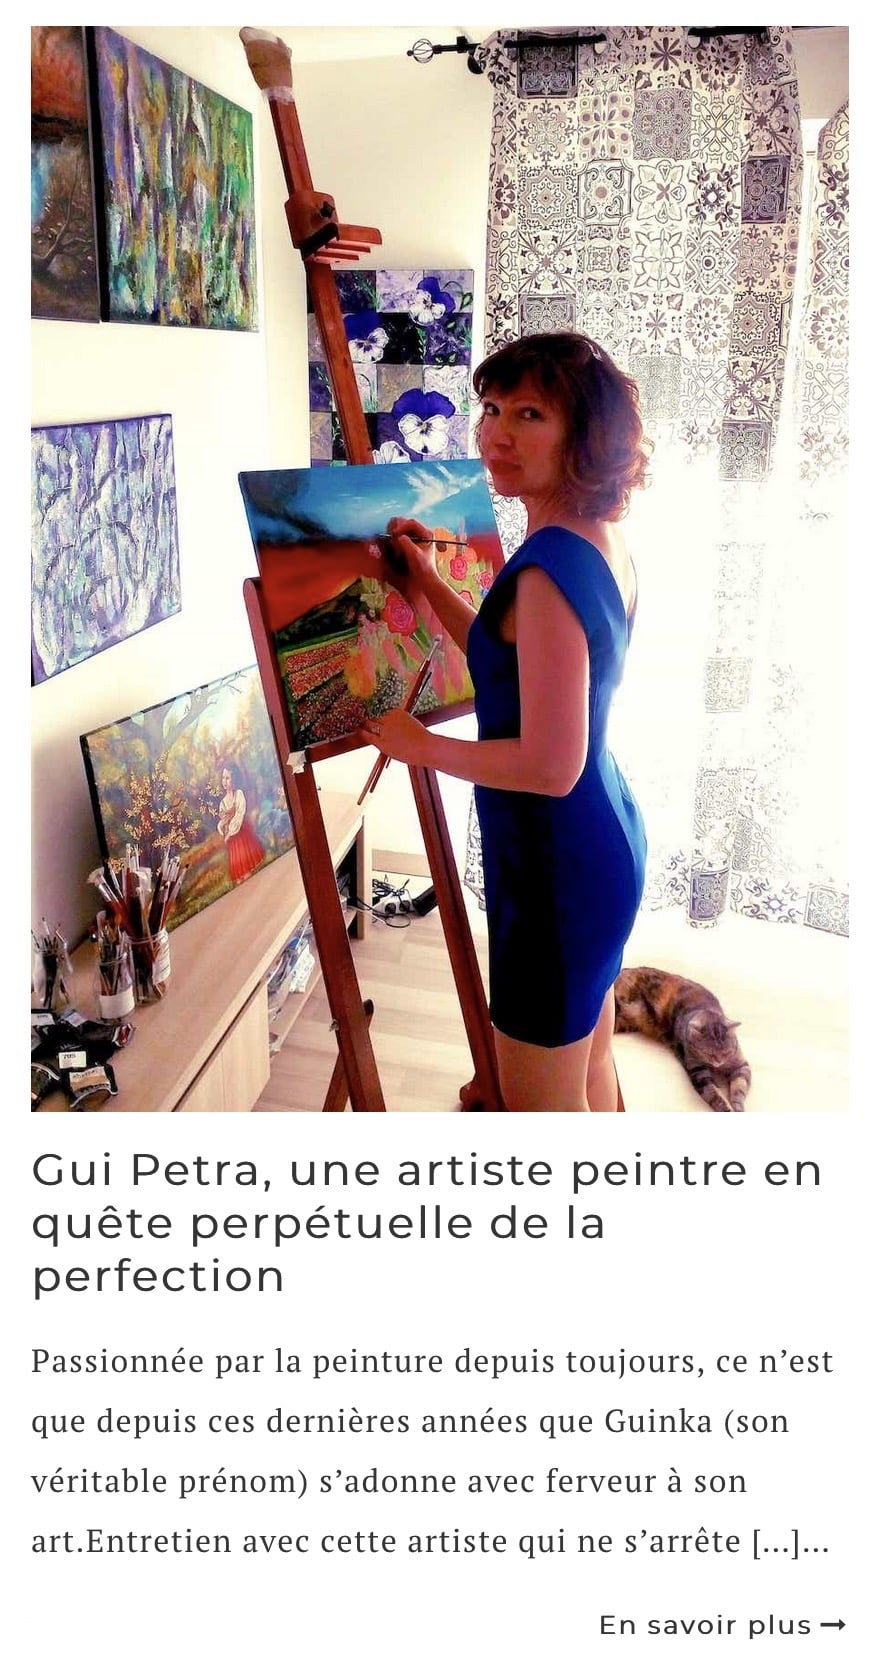 Article interview de l'artiste Gui Petra